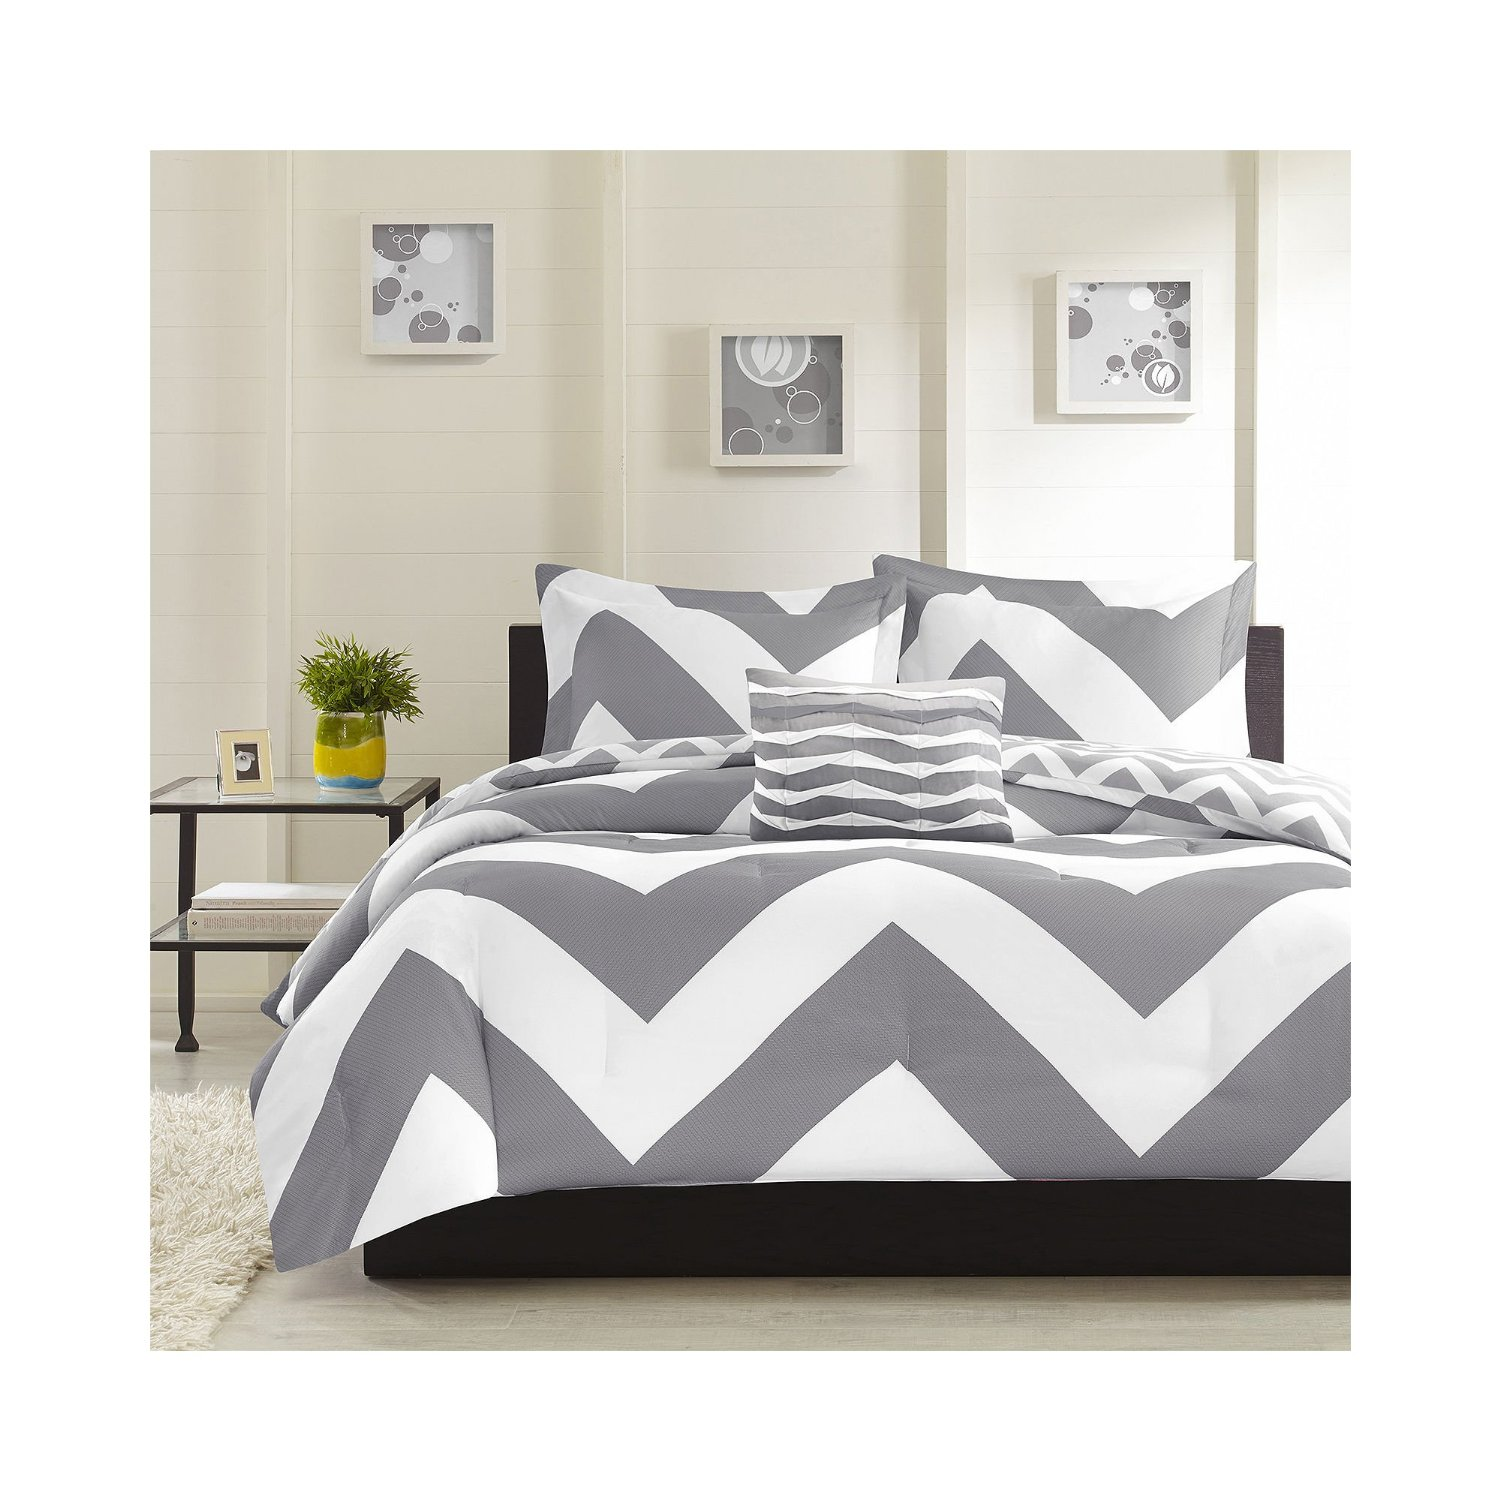 size comforters king twin of grey full cute gold coral blue comforter light set bedding gray white sets bed teal and